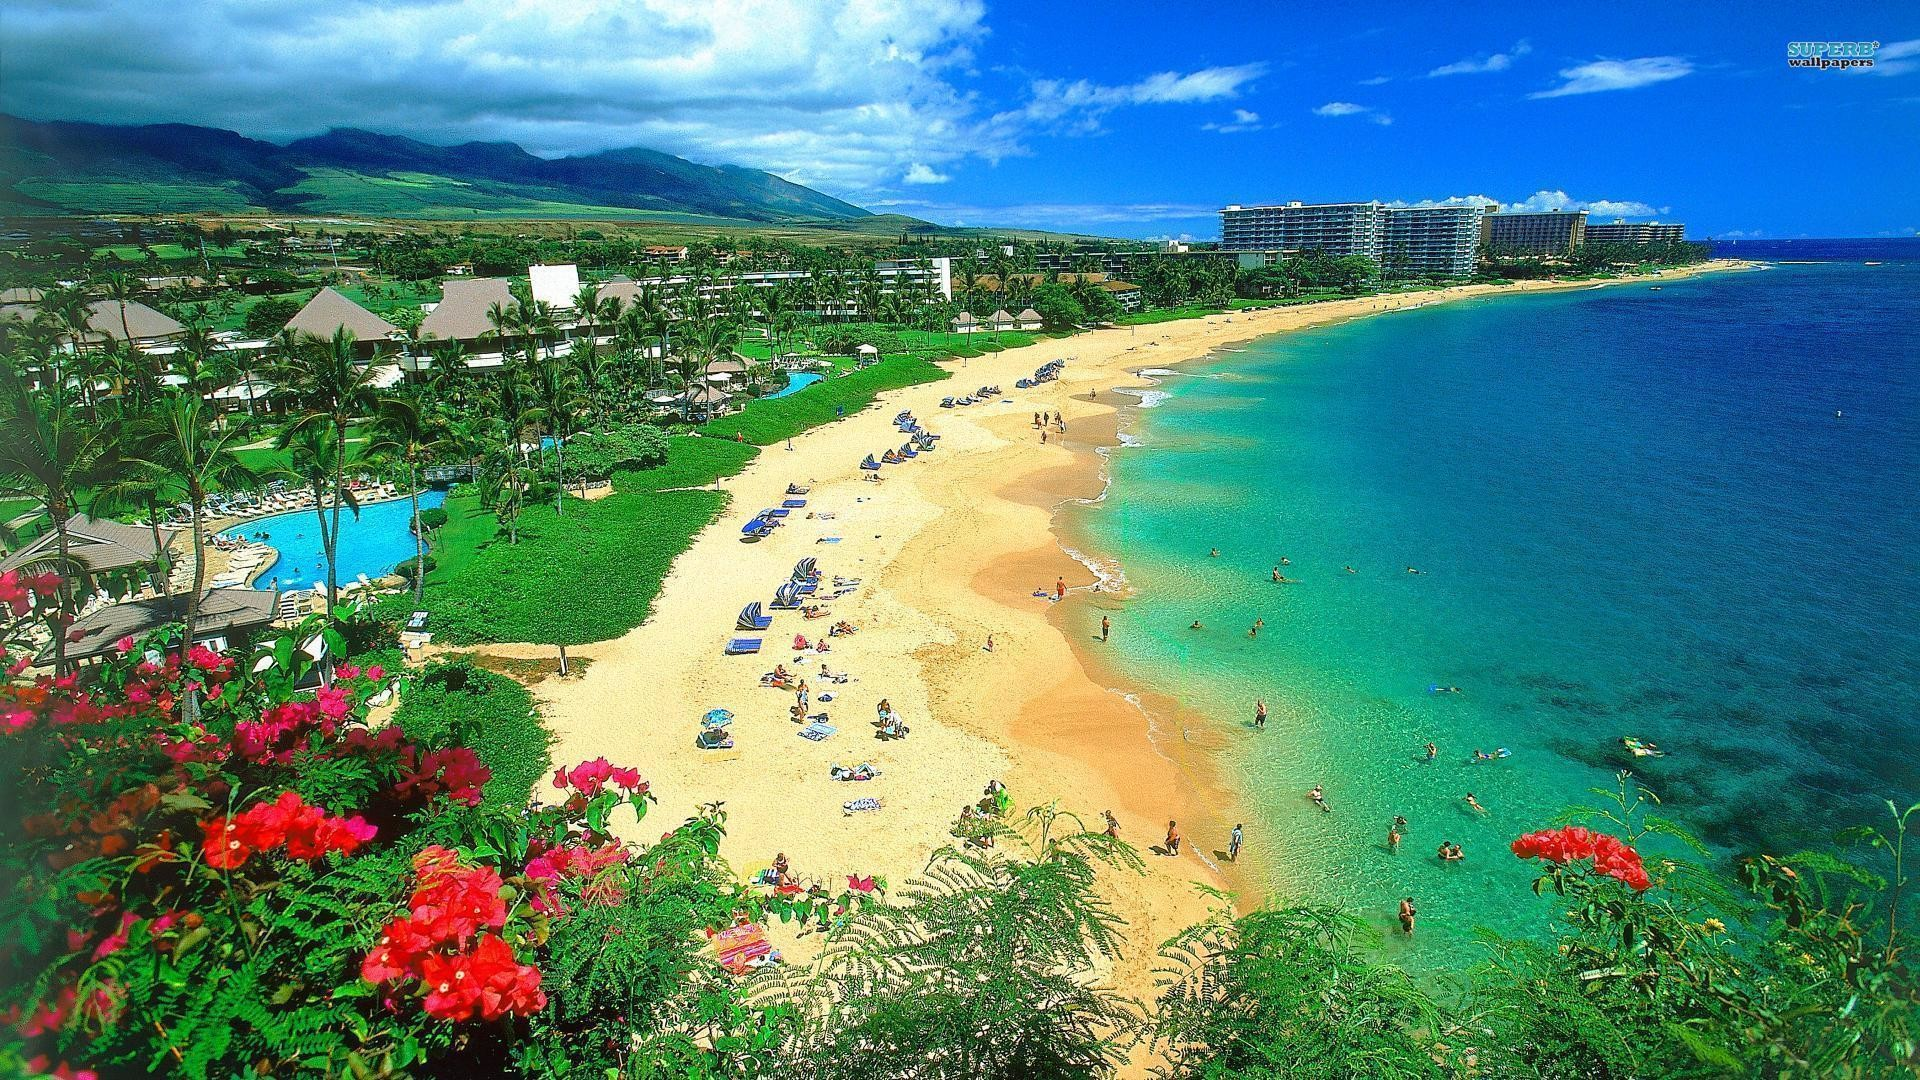 hawaii beaches wallpaper (52+ images)